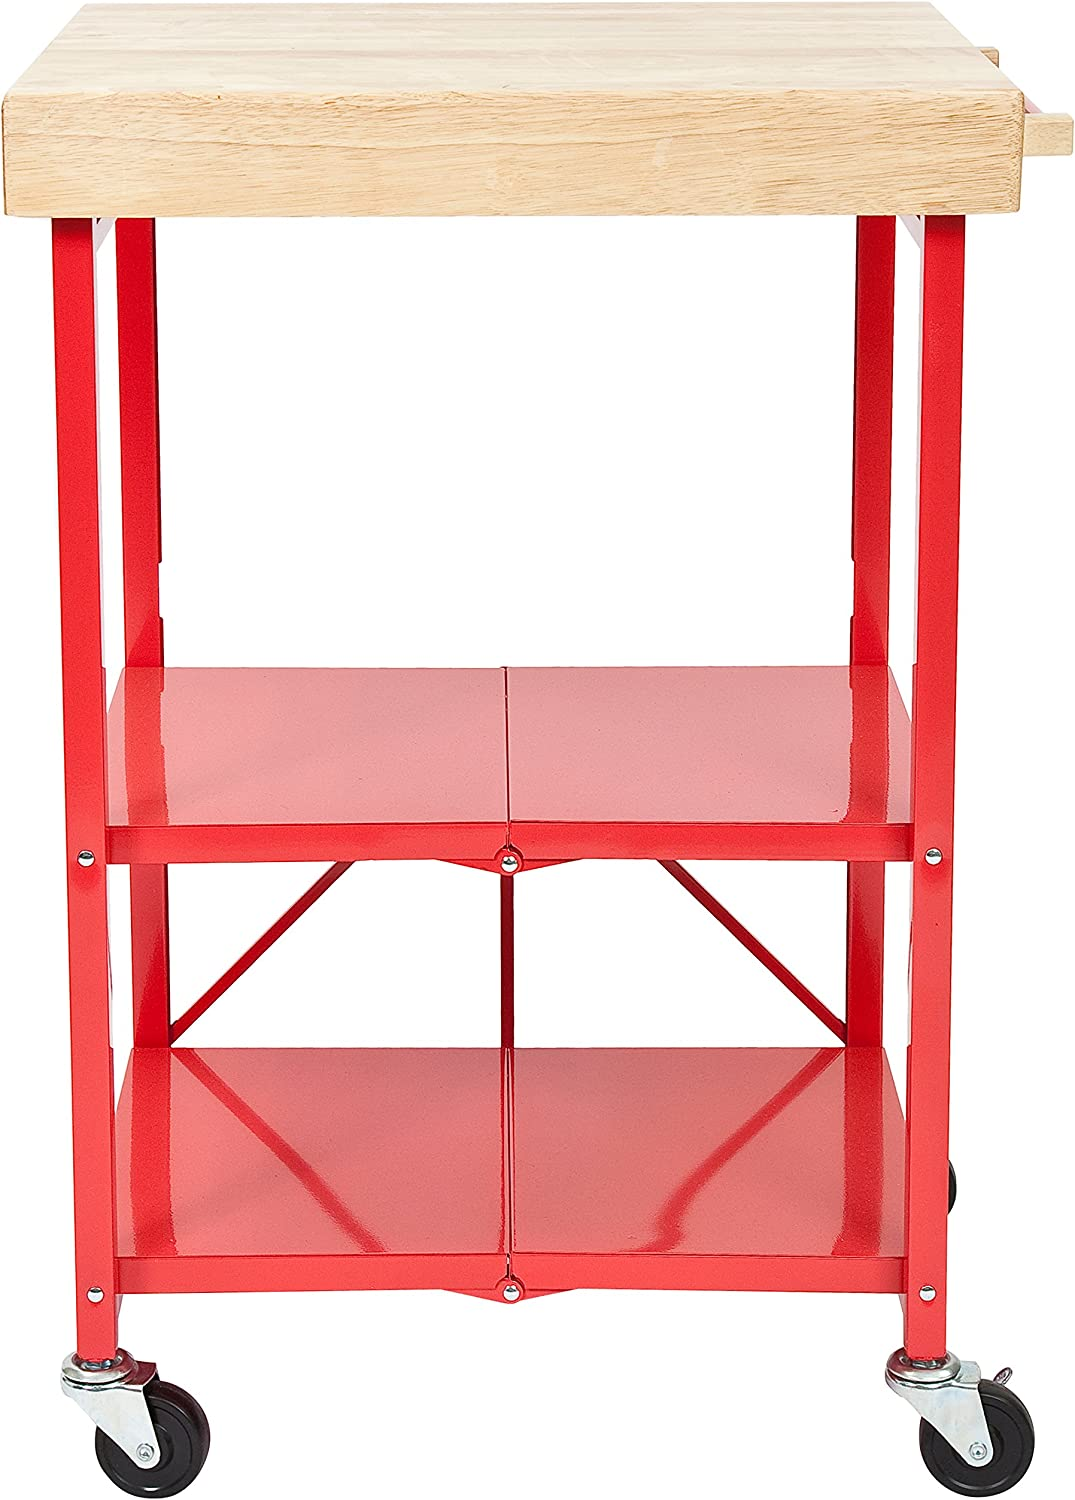 Origami Foldable Kitchen Island Cart, Red